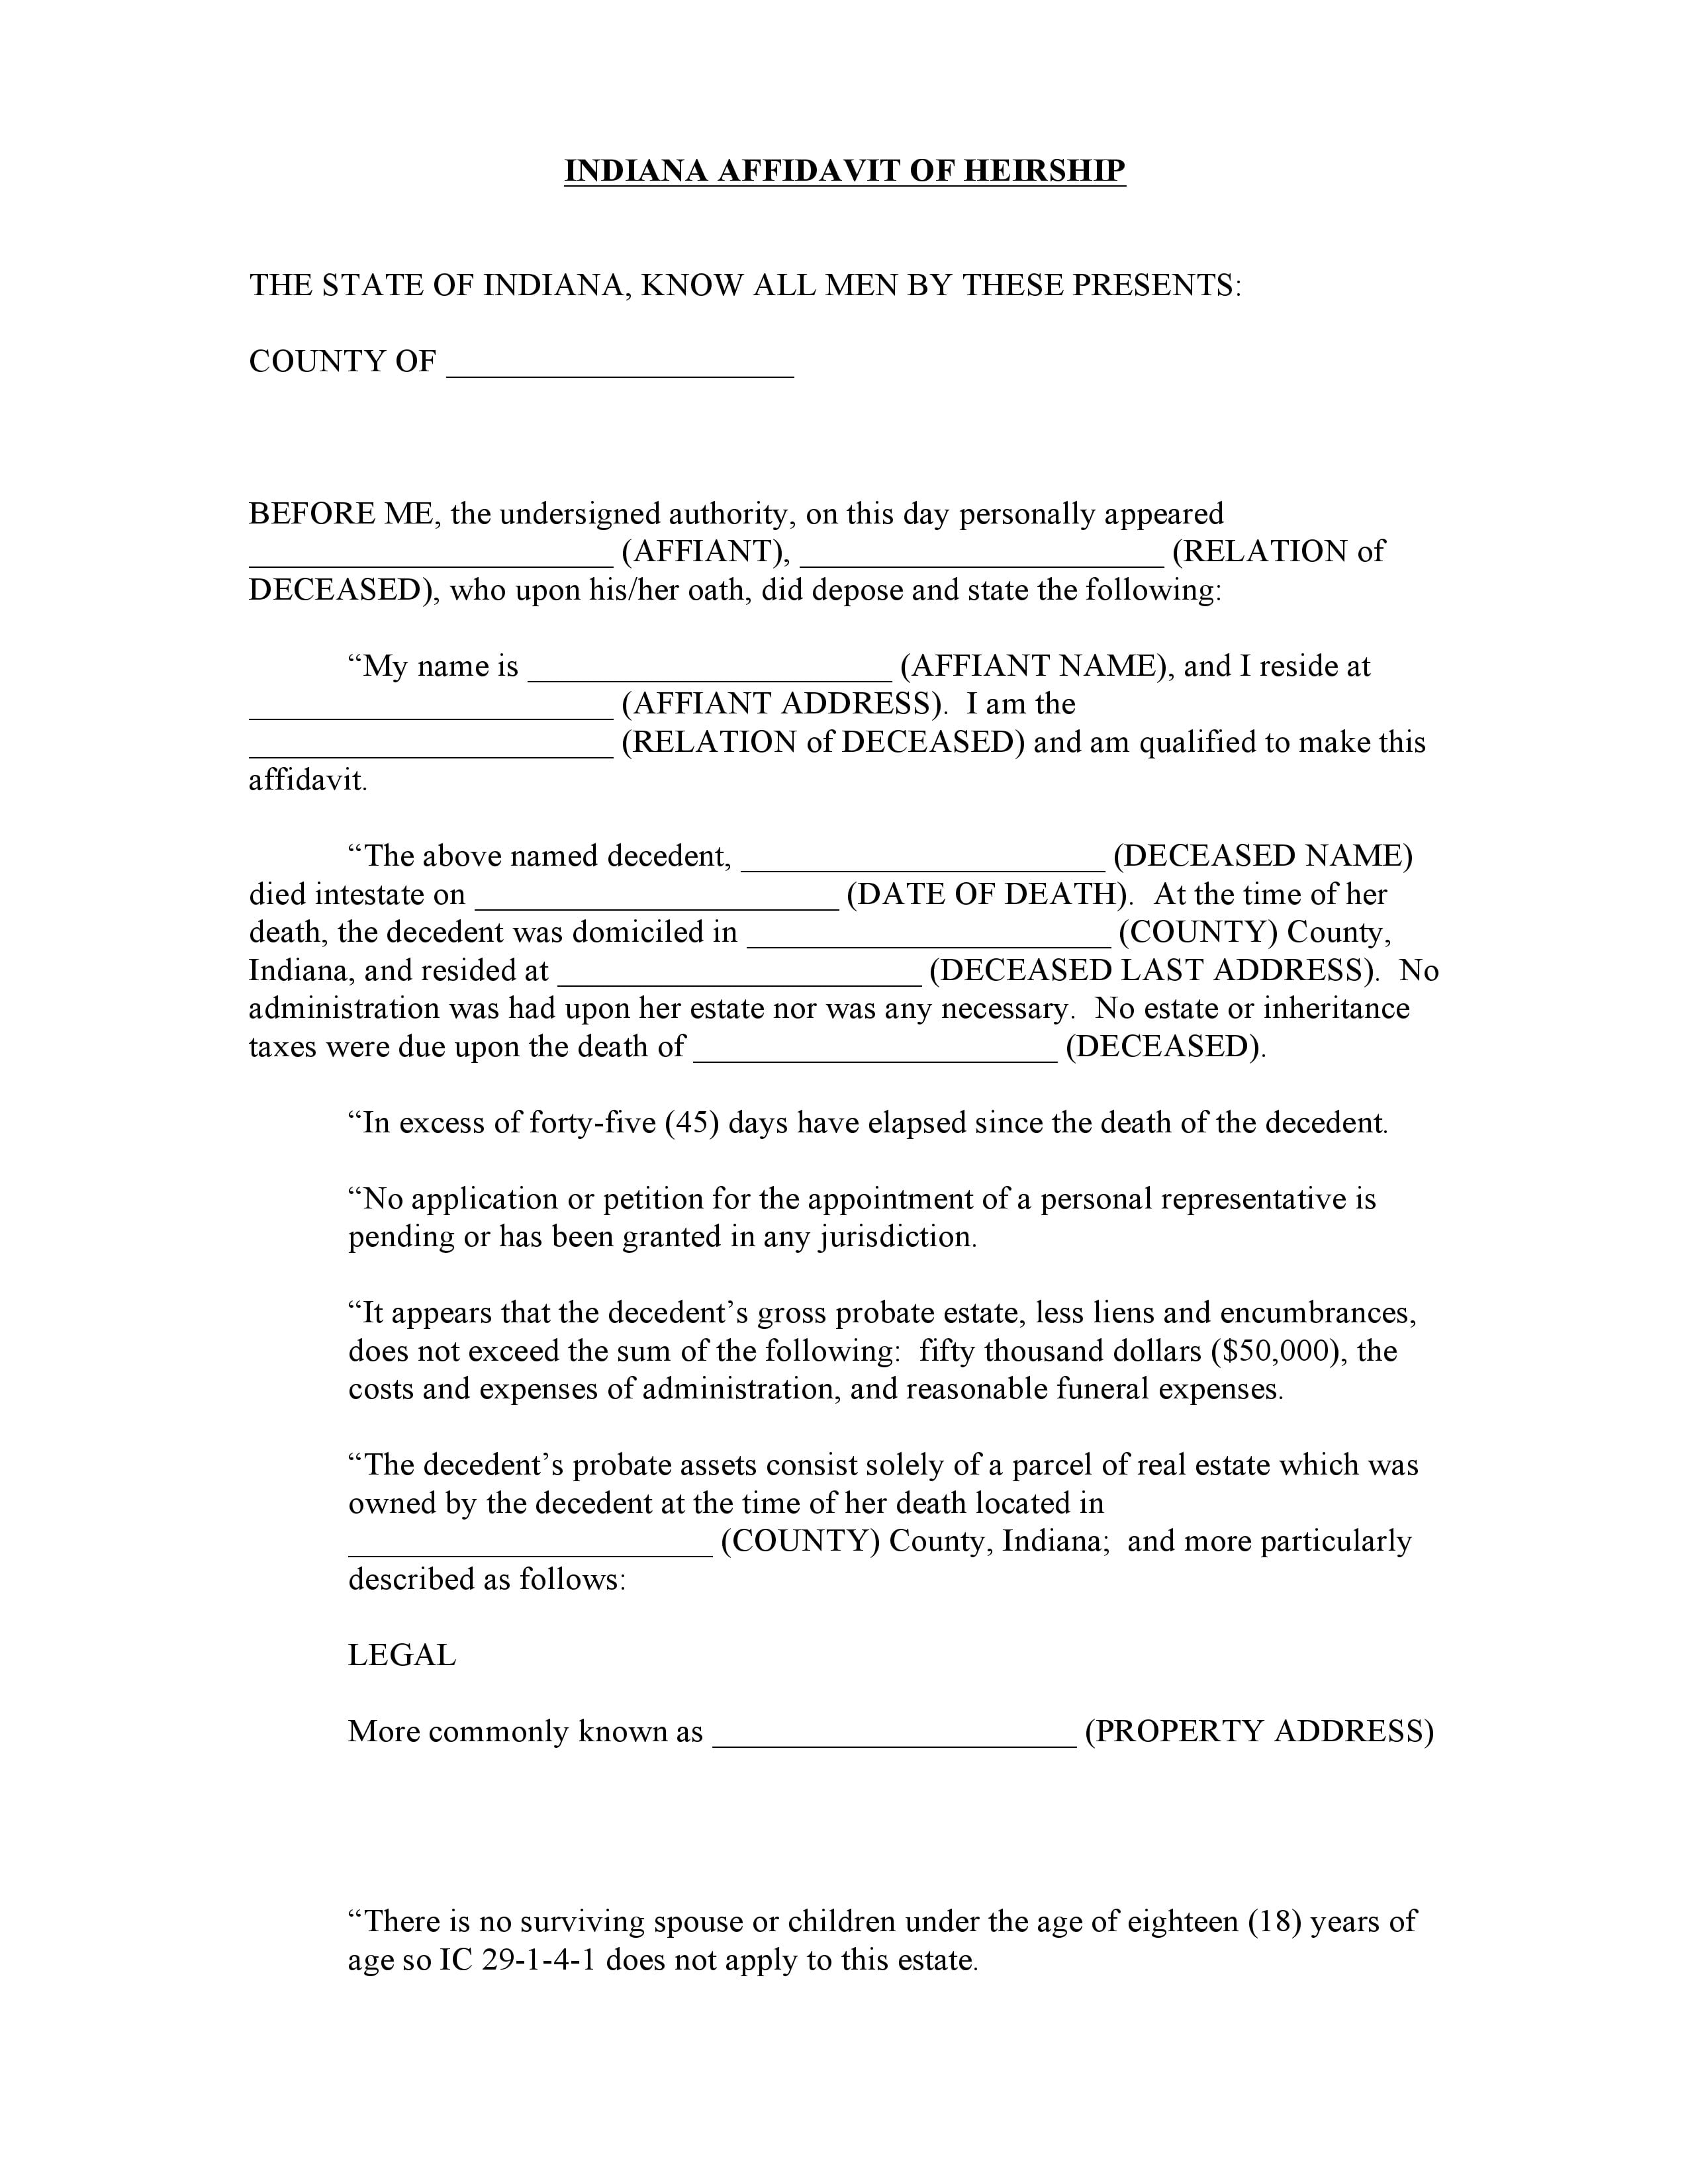 Indiana Affidavit Of Heirship